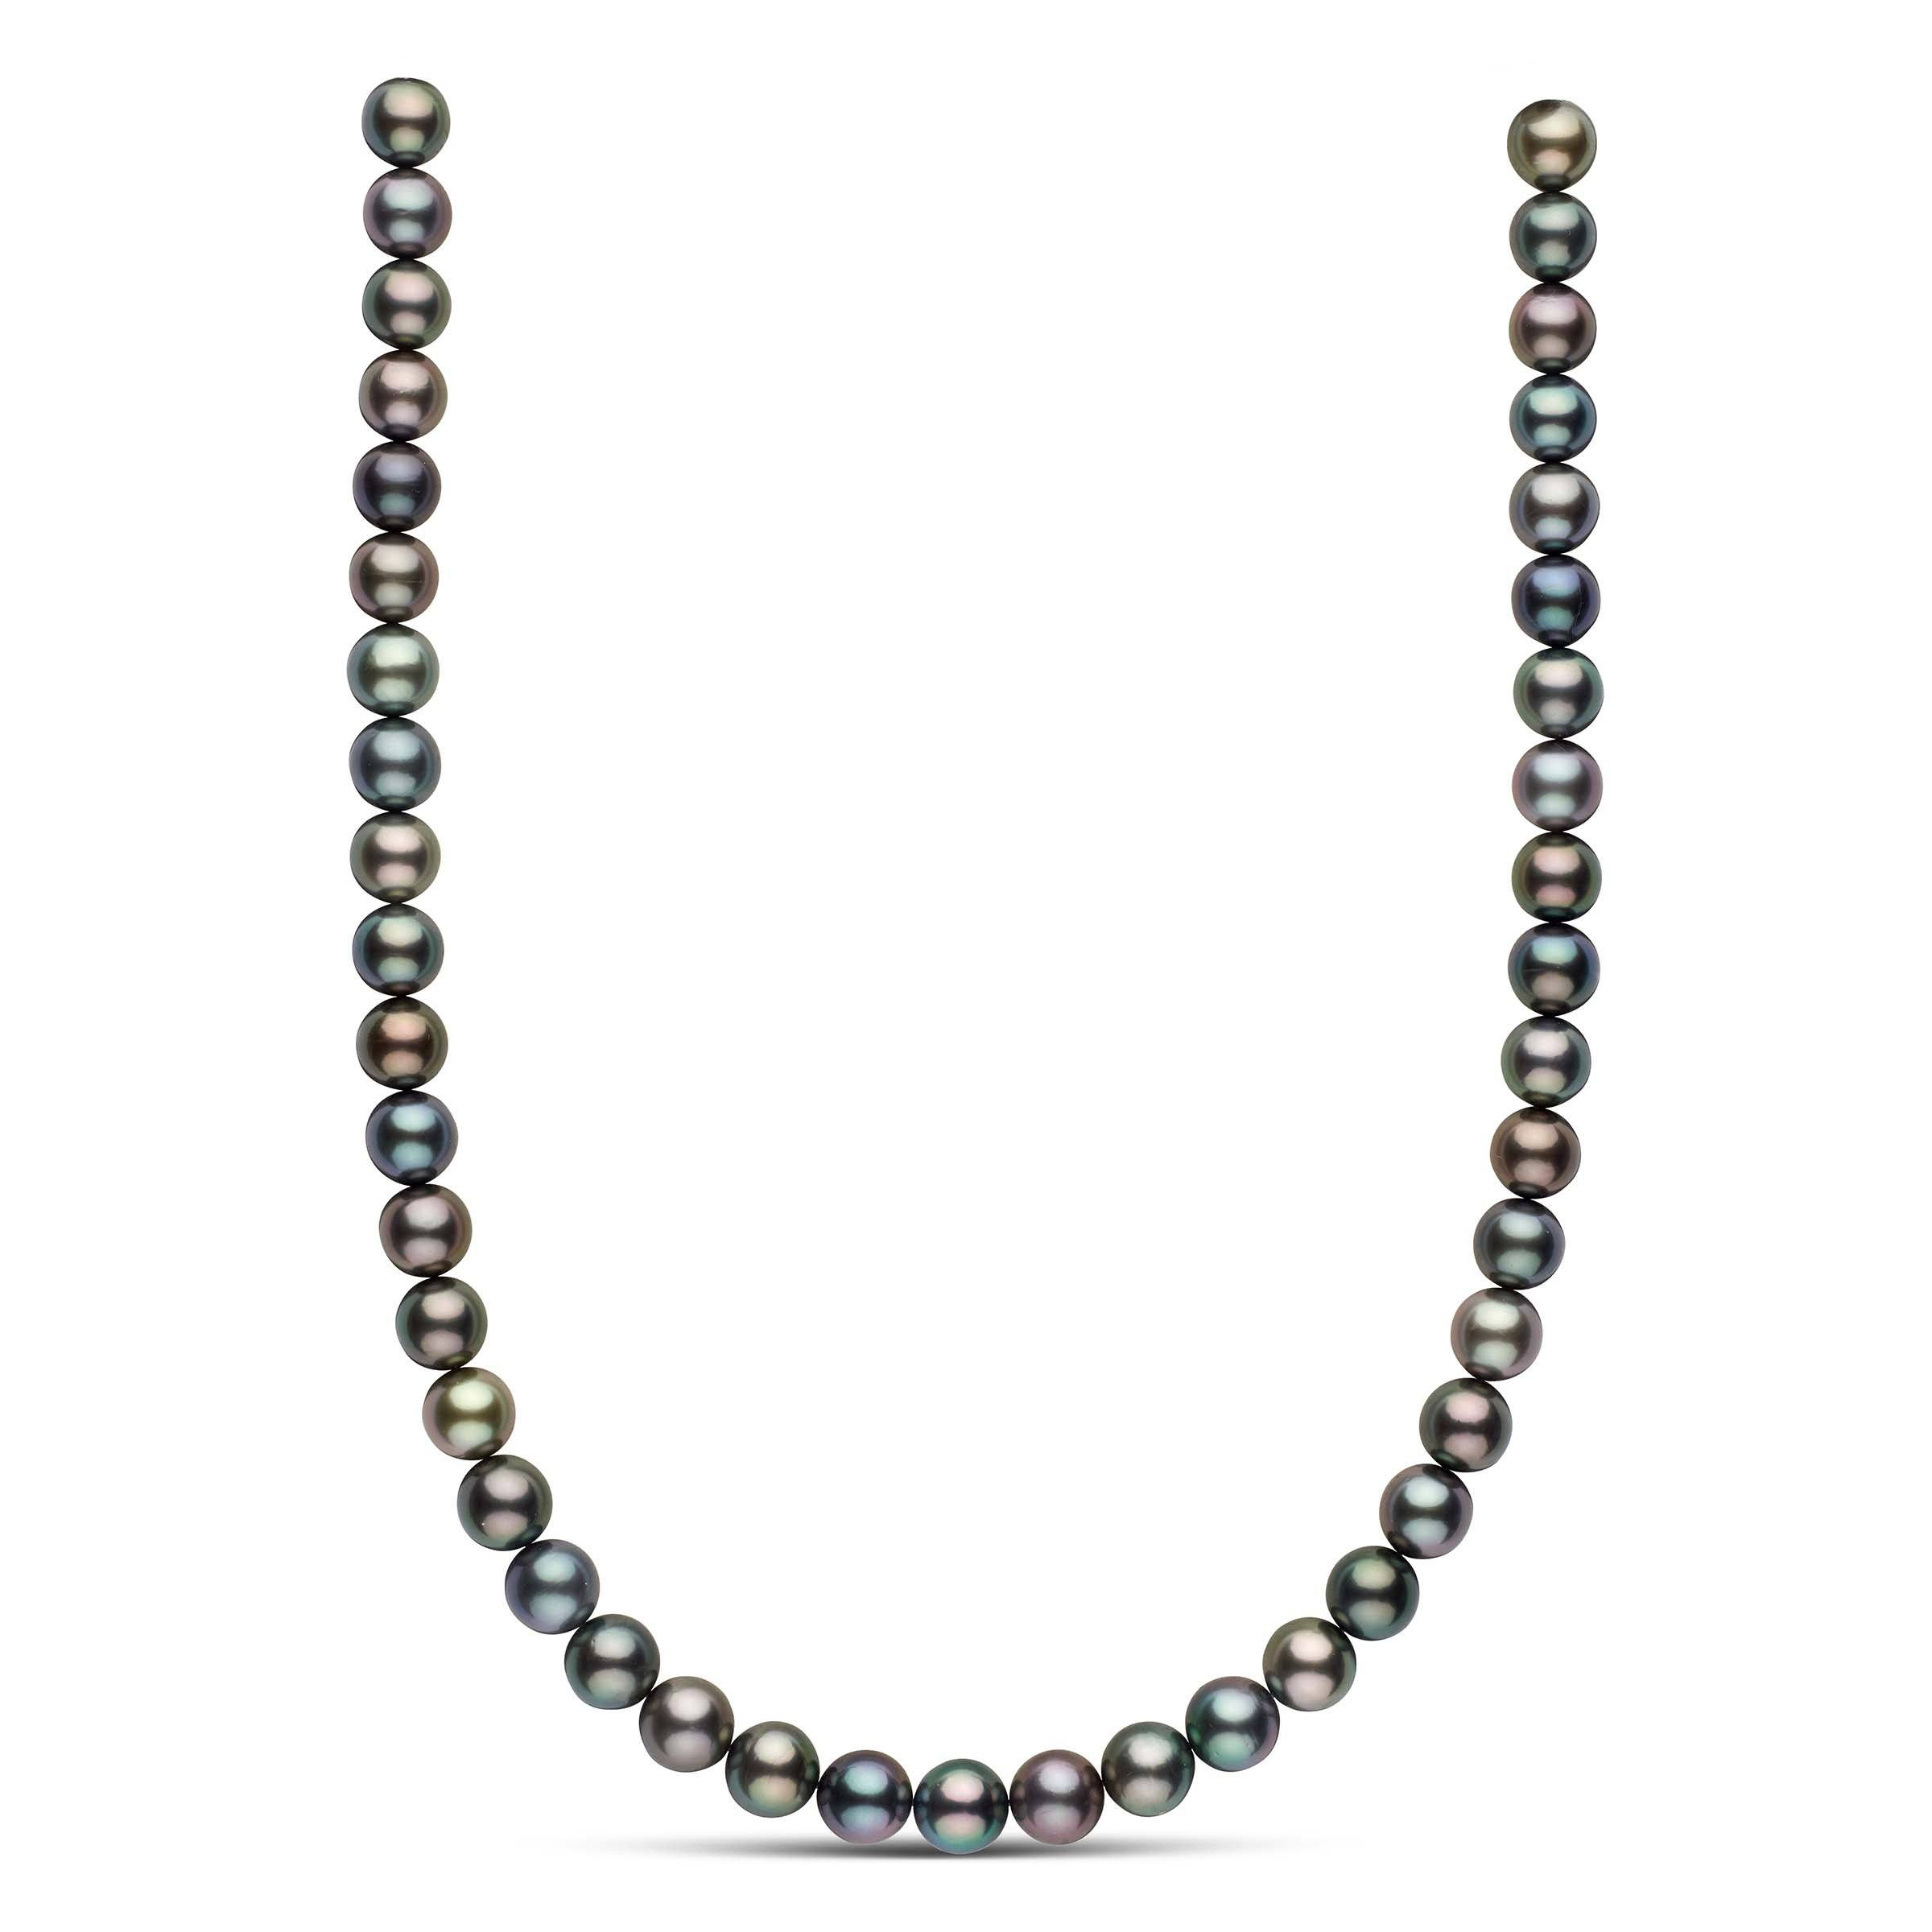 18-inch 9.3-9.8 mm AAA Round Multicolor Tahitian Pearl Necklace